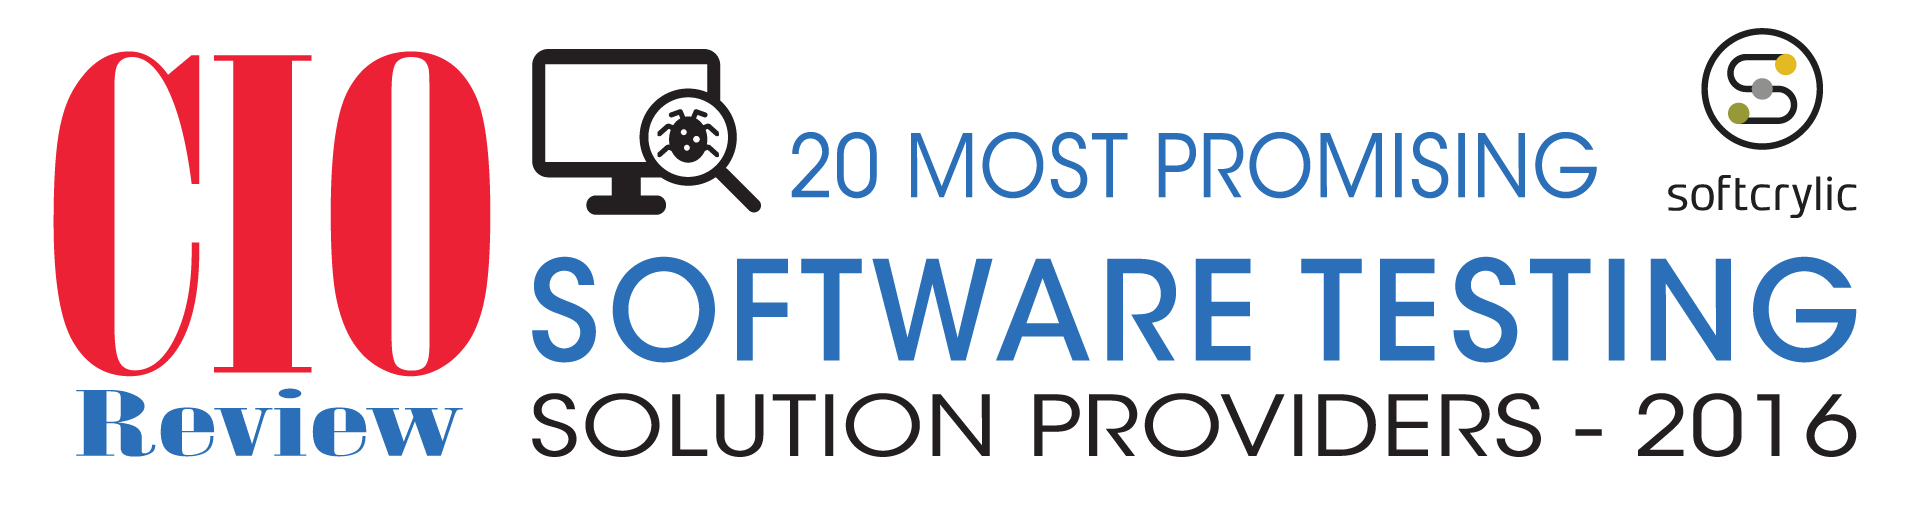 cio-review-20-most-promising-software-solution-providers